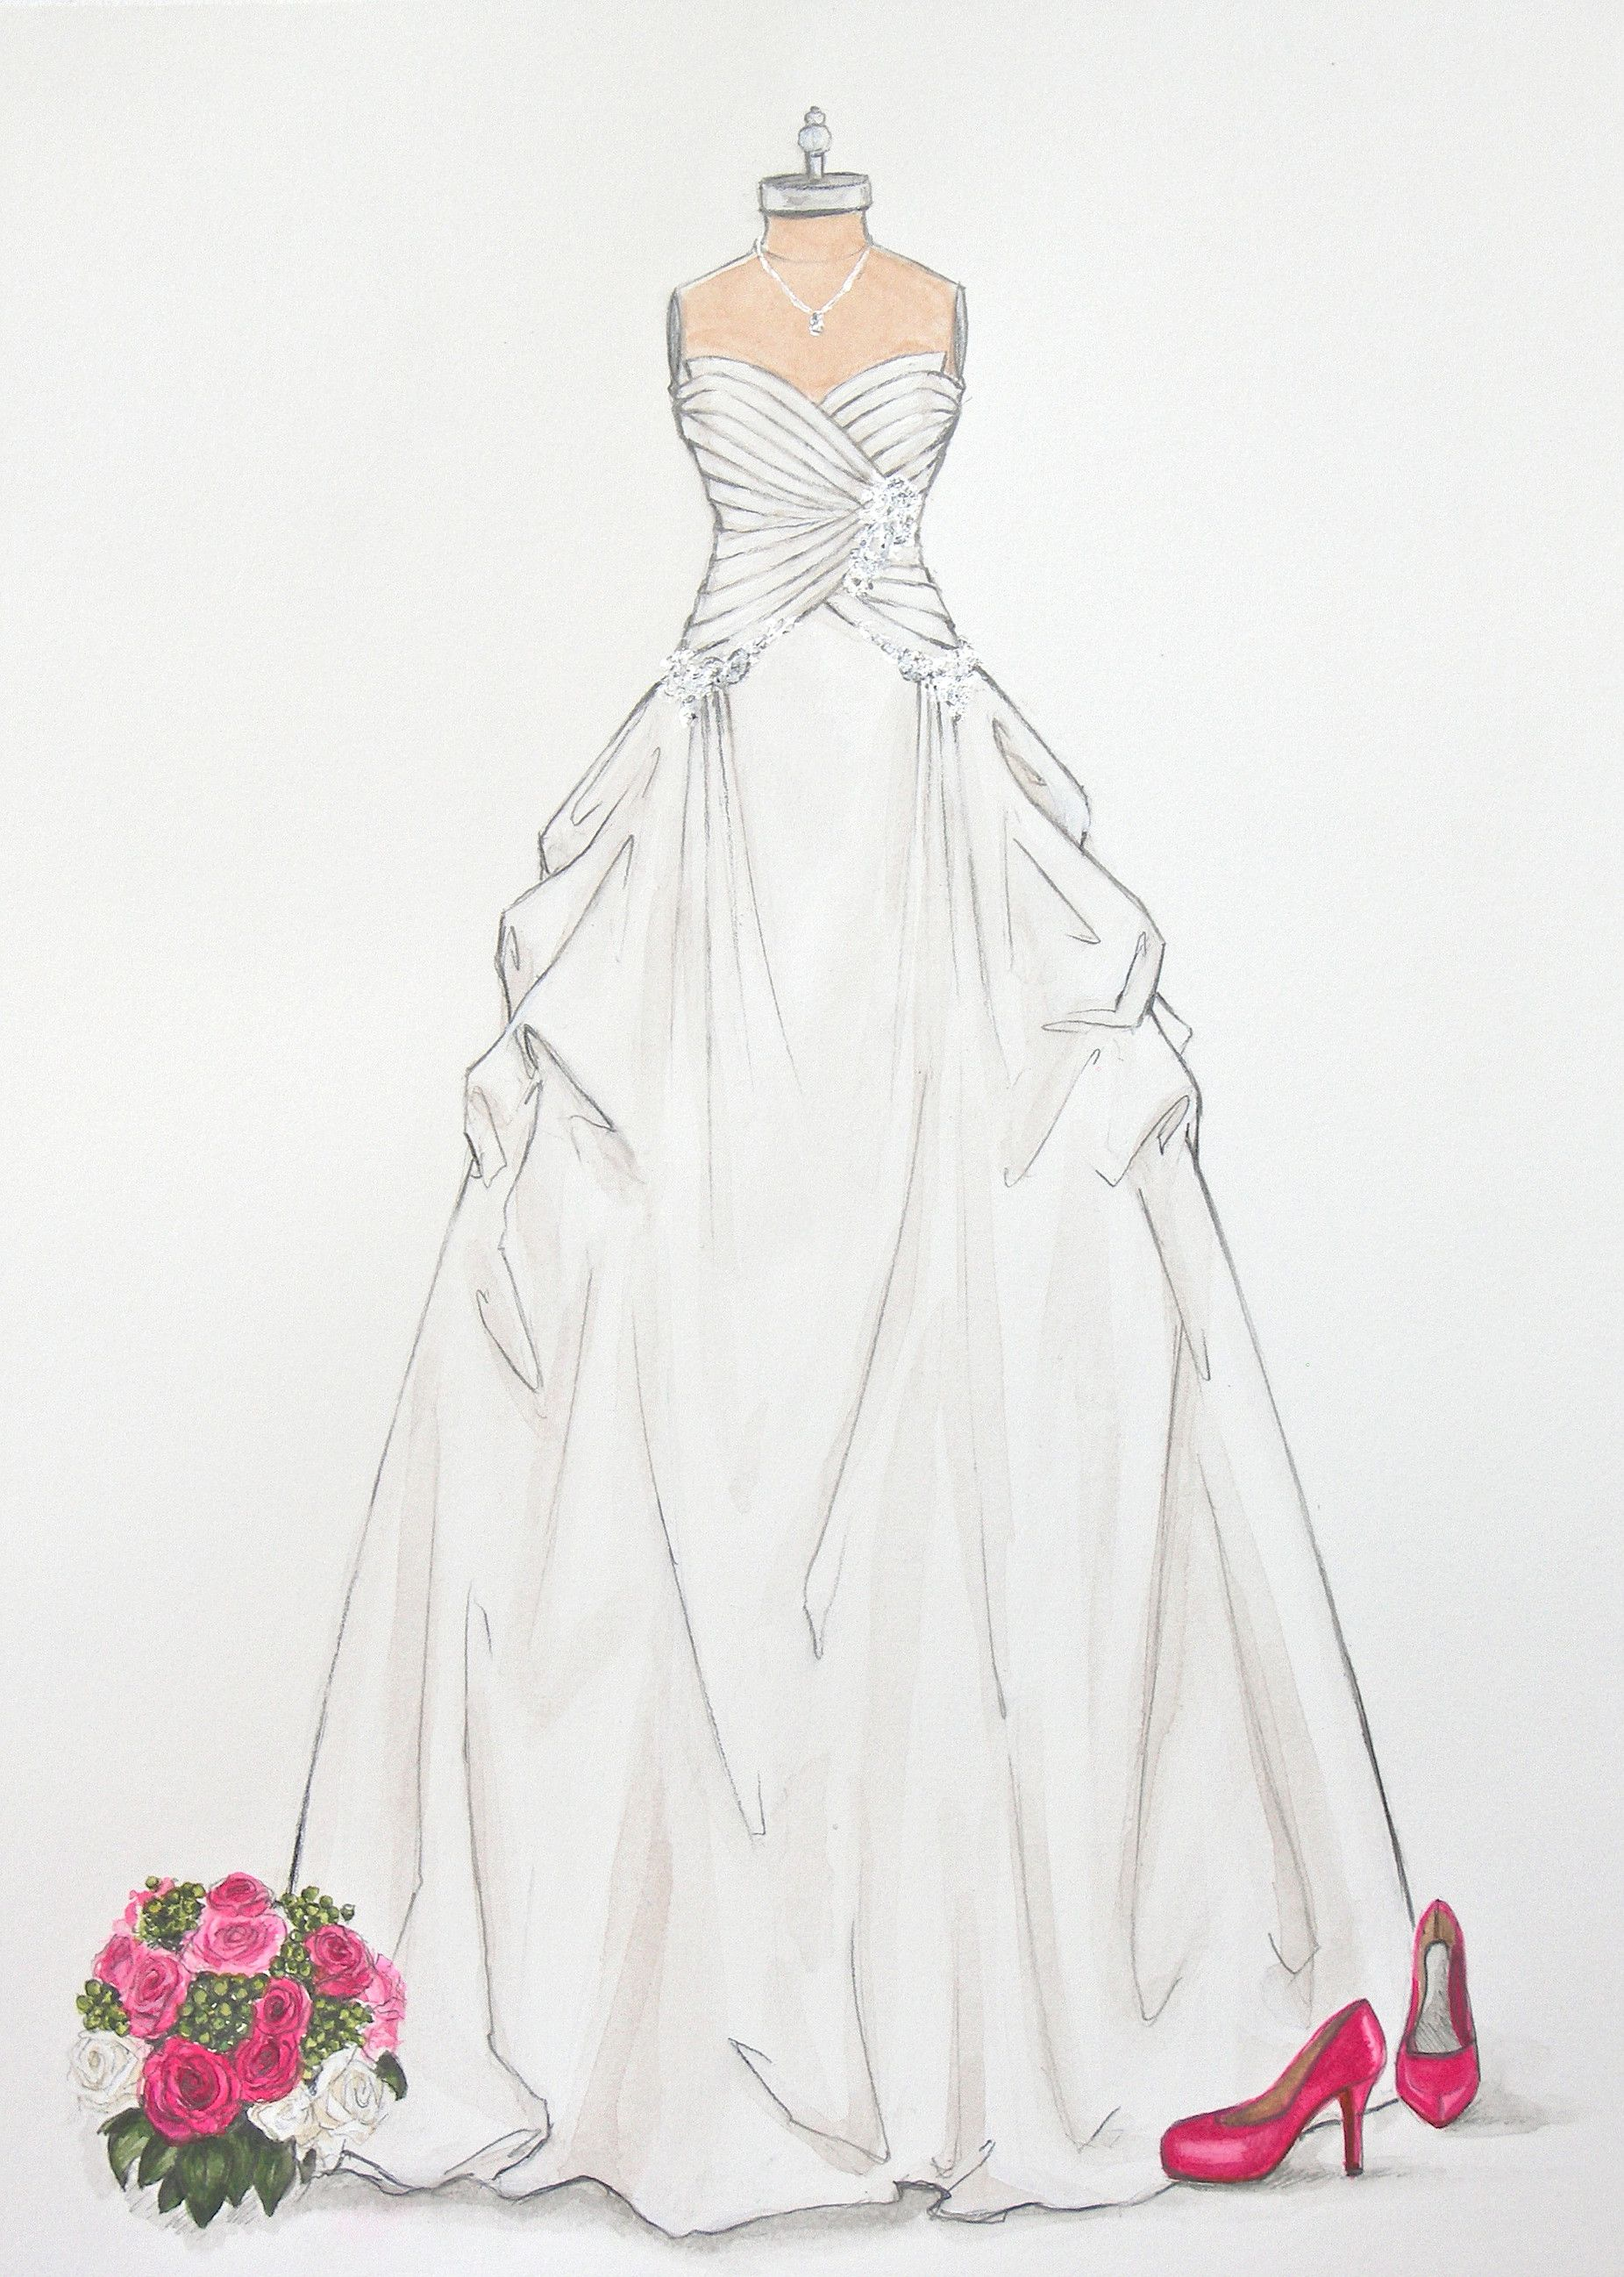 porfolio of custom wedding dress sketches and